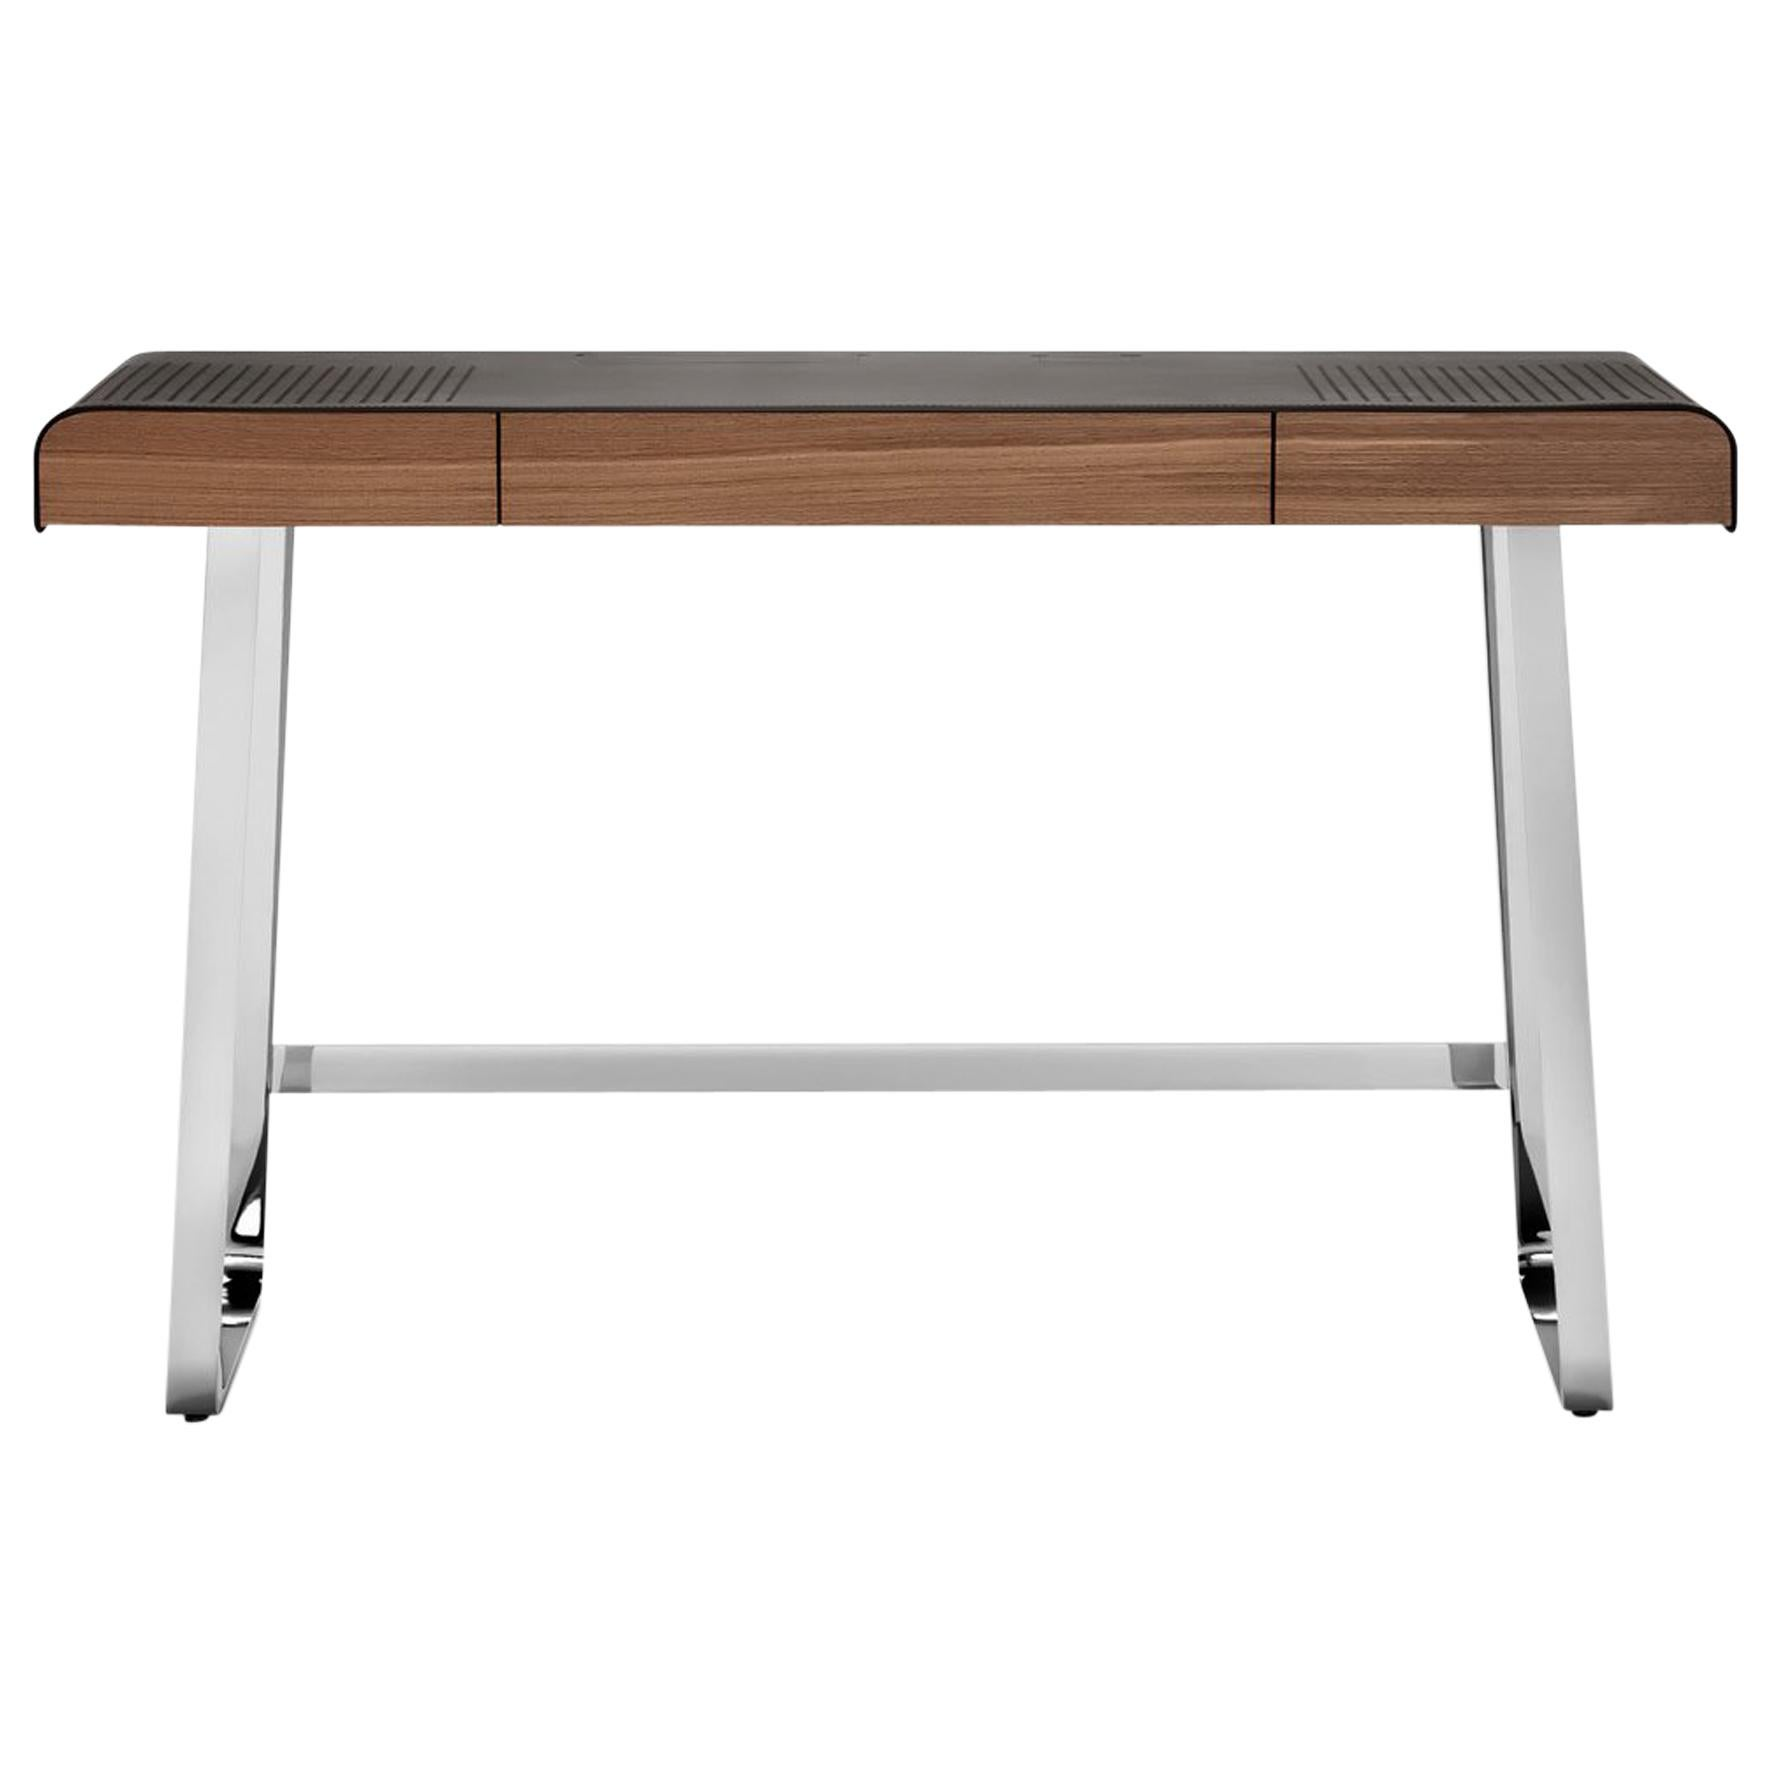 ClassiCon Pegasus Desk in Walnut with Chrome by IF Group & Tilla Goldberg